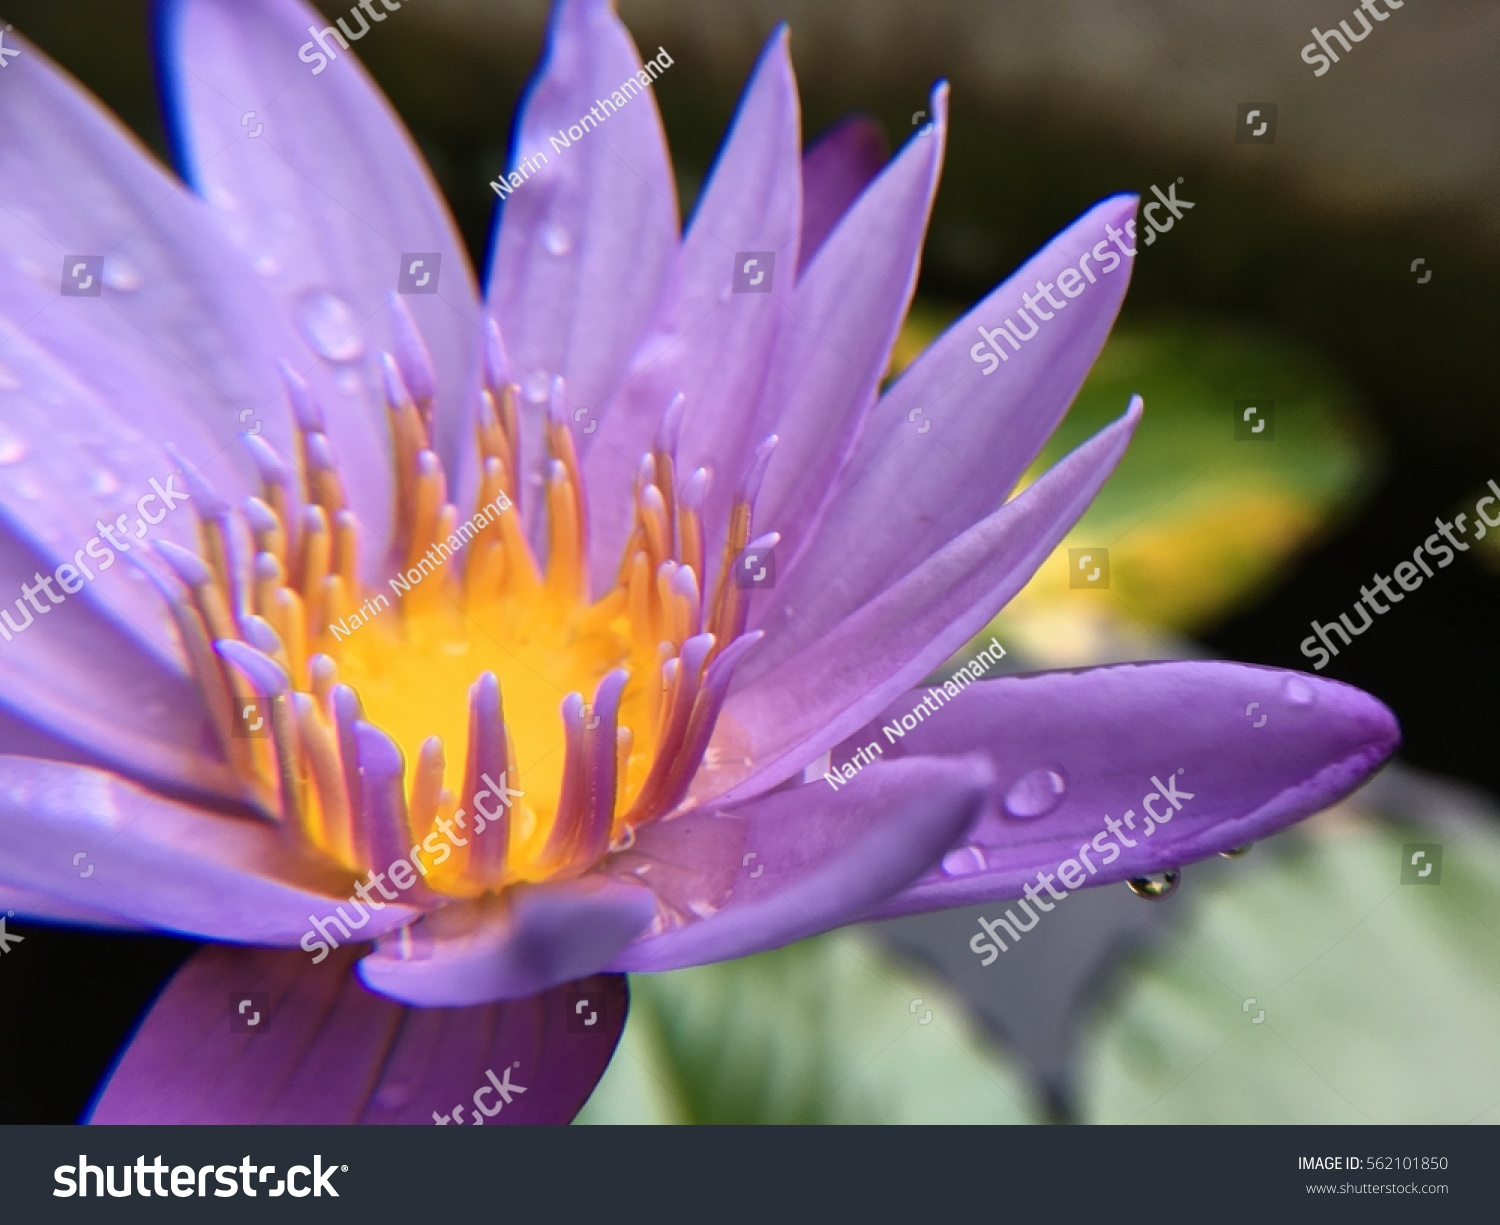 This Beautiful Waterlily Or Lotus Flower Is Complimented By The Rich